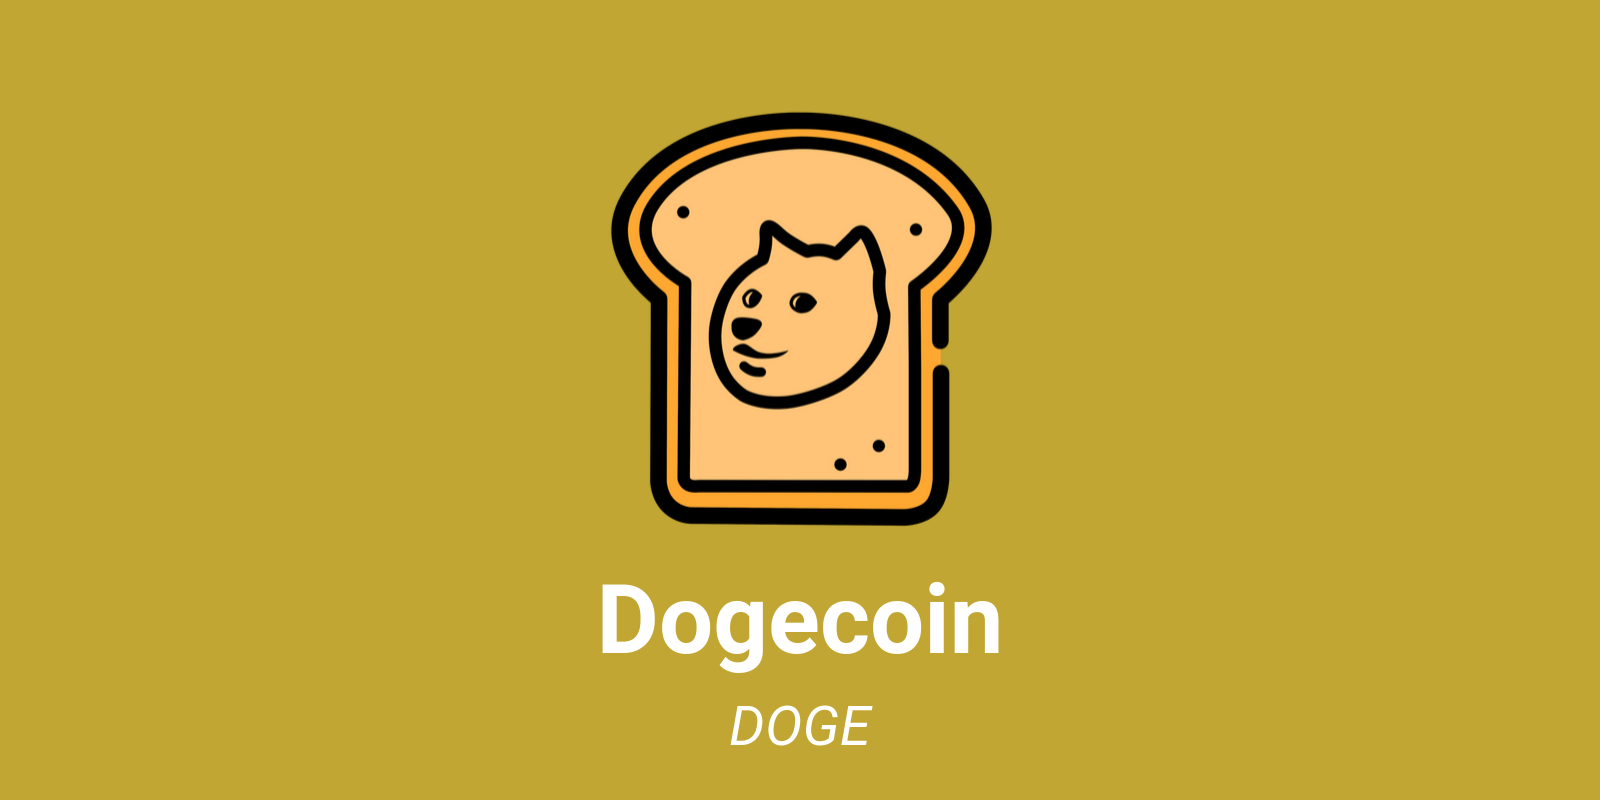 comment faire beaucoup de dogecoin 2020 options alimentaires